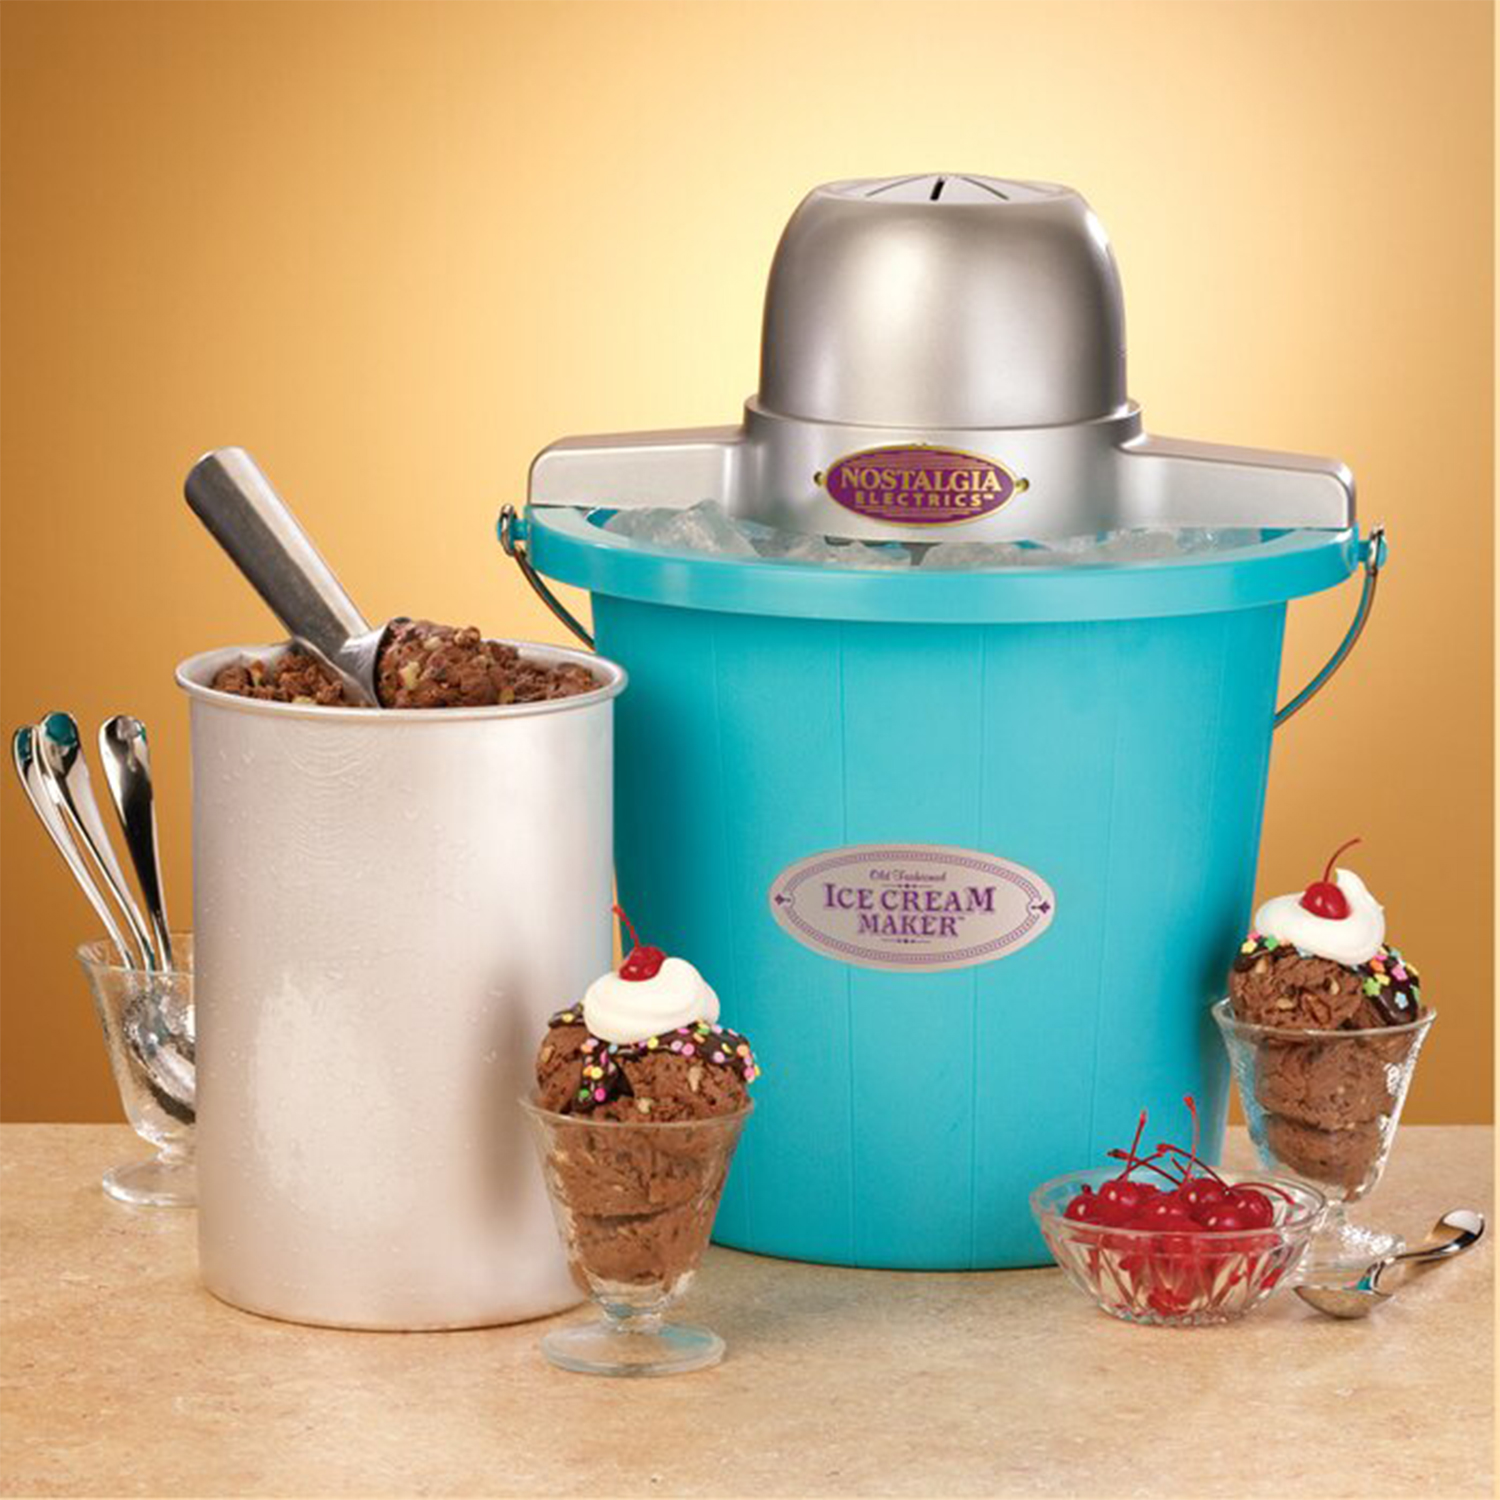 Nostalgia 4-qt Old Fashioned Ice Cream Maker